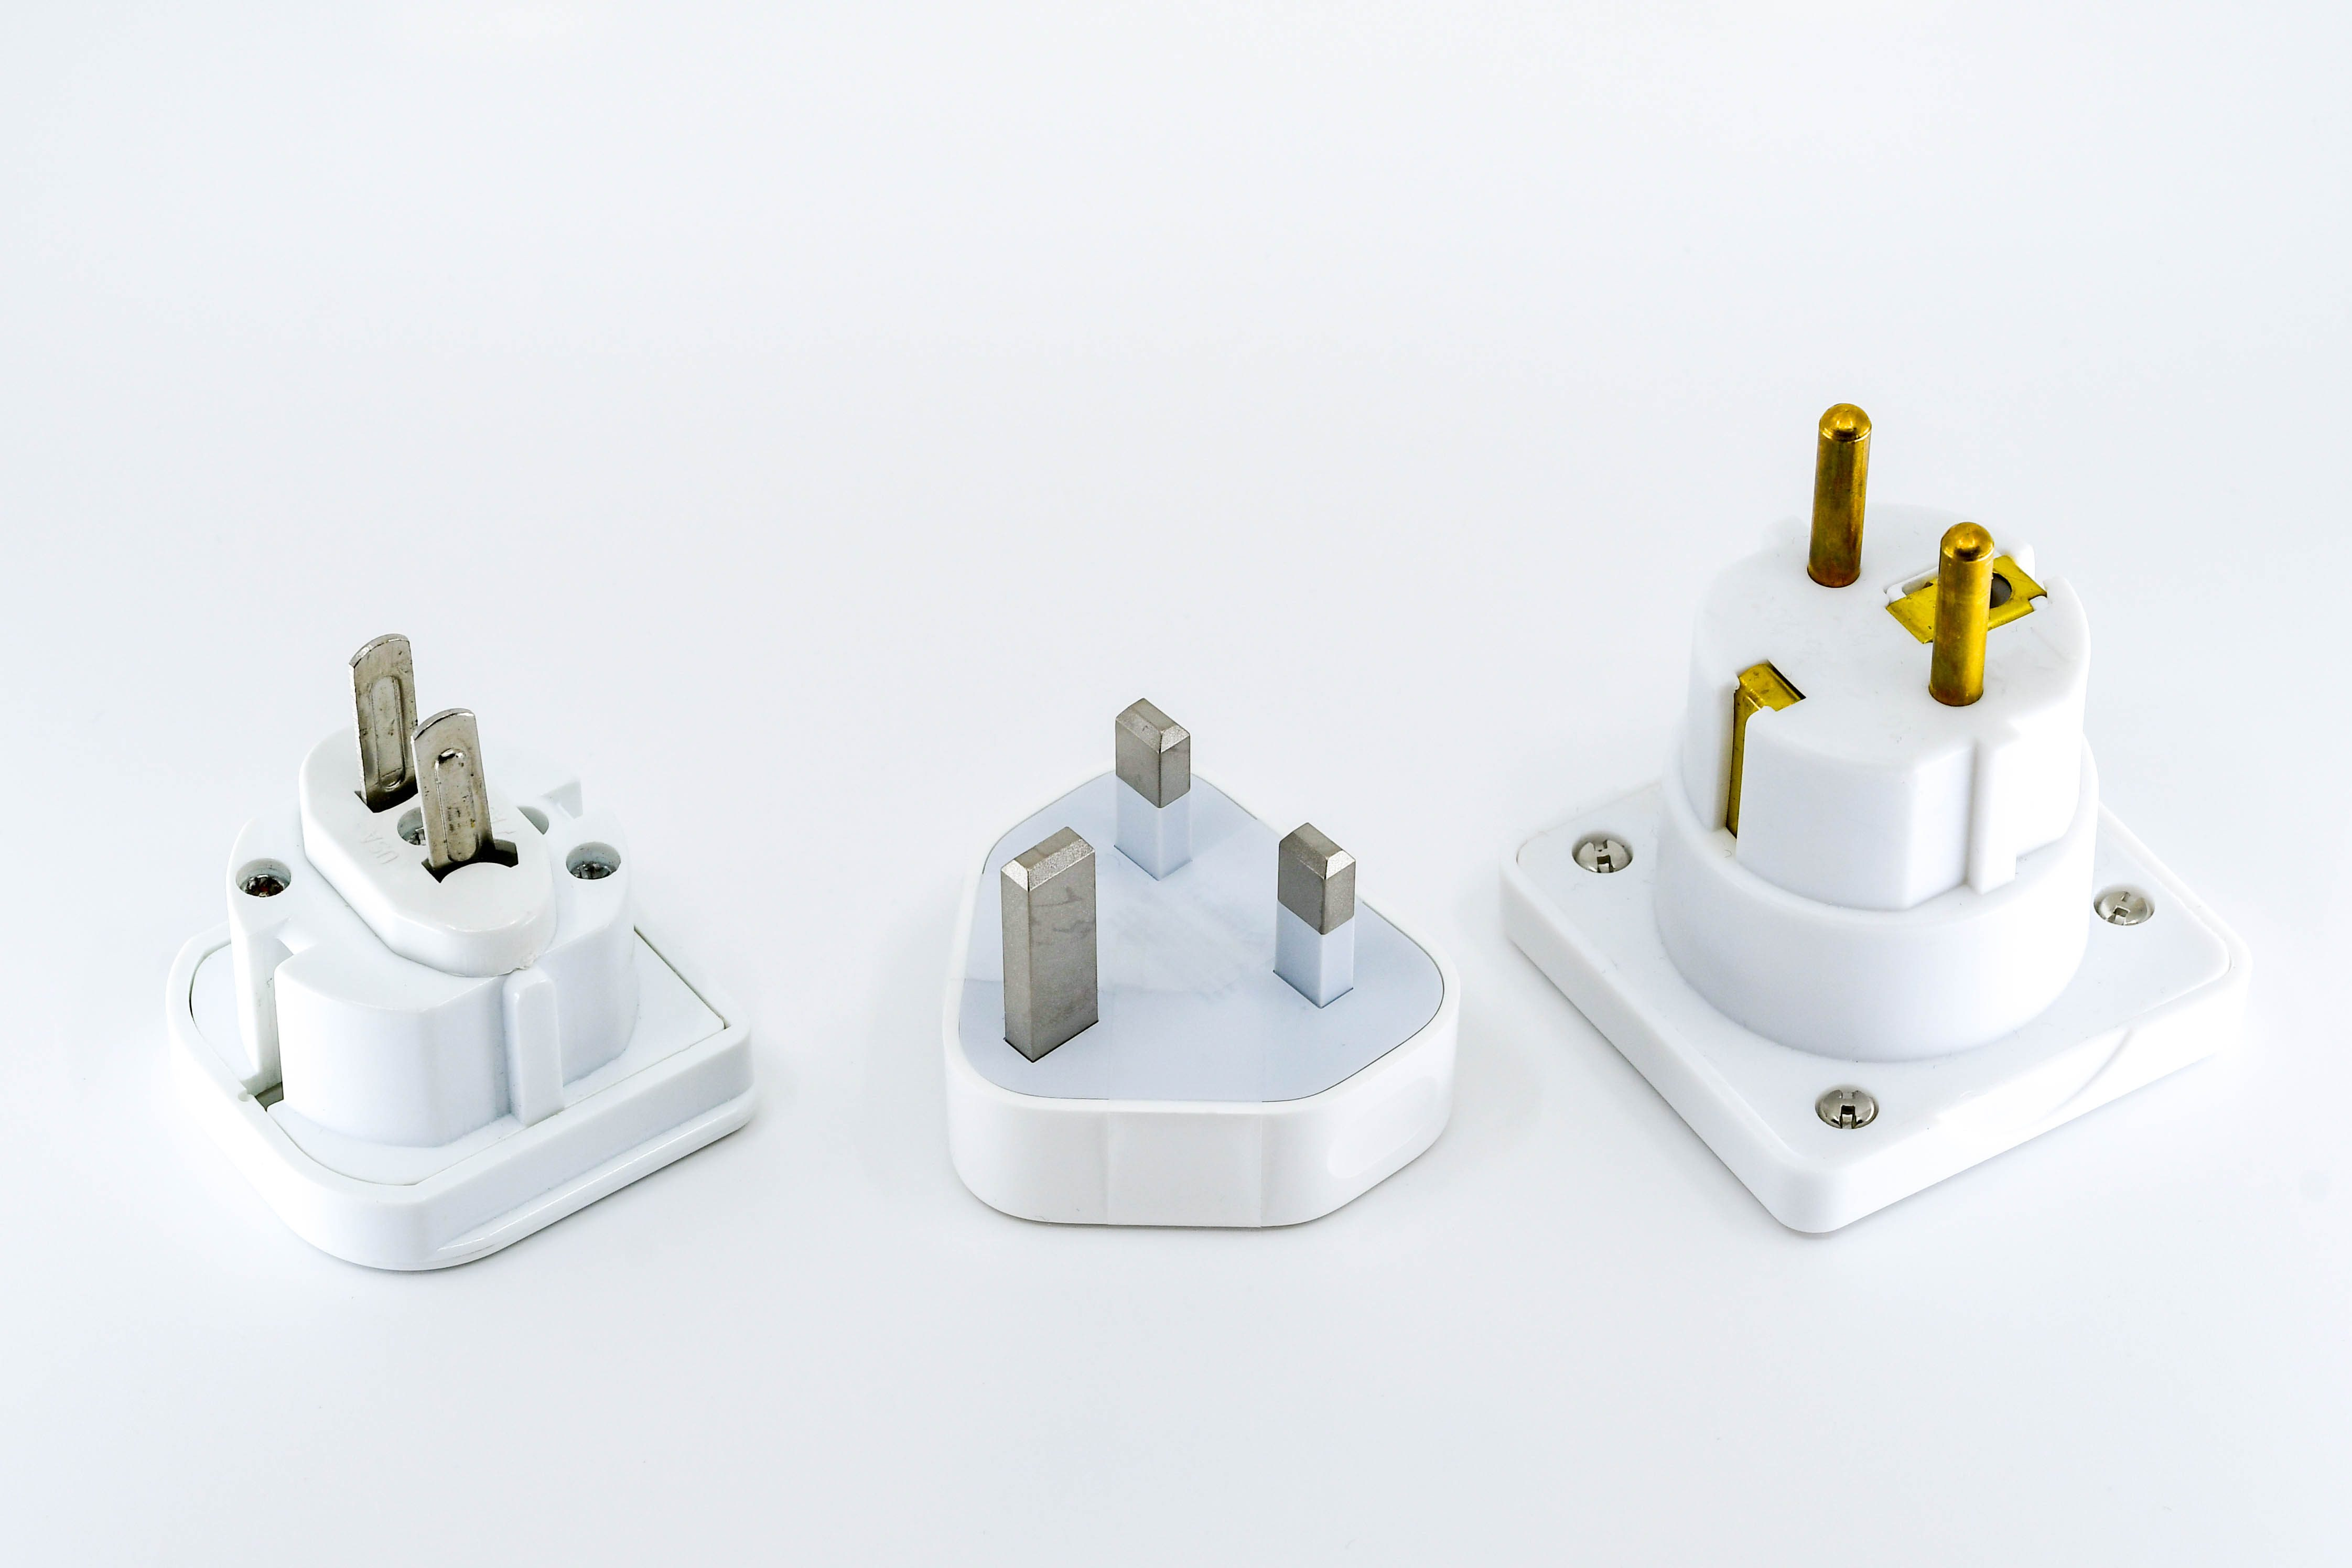 Close up view of three different travel adapter plugs for mains power isolated against a plain white background. Left to right ar the adapters for the USA, UK and Europe.